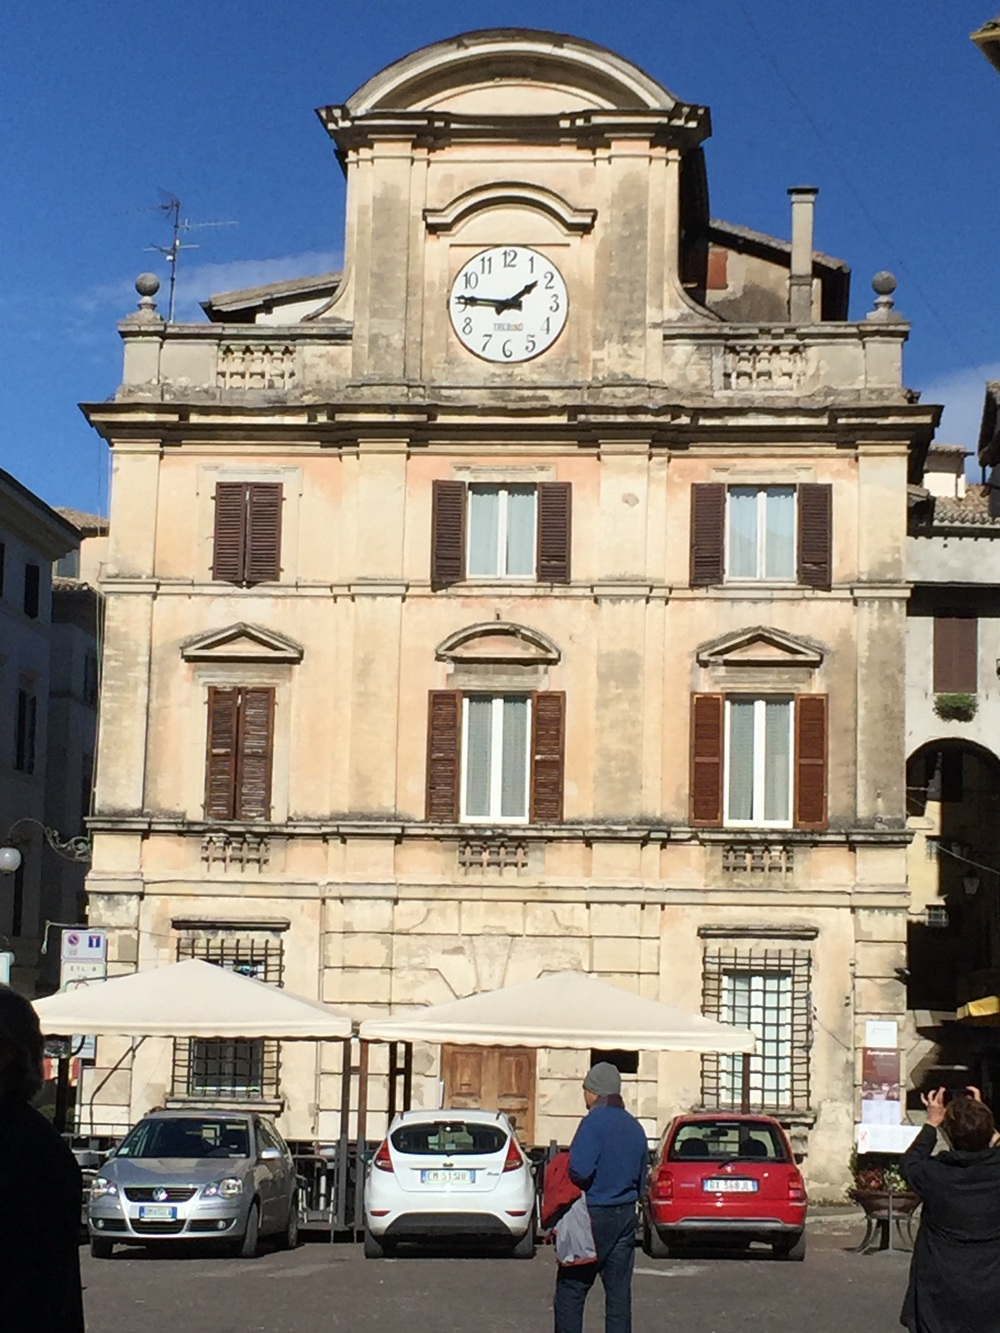 Spoleto building with clocktower